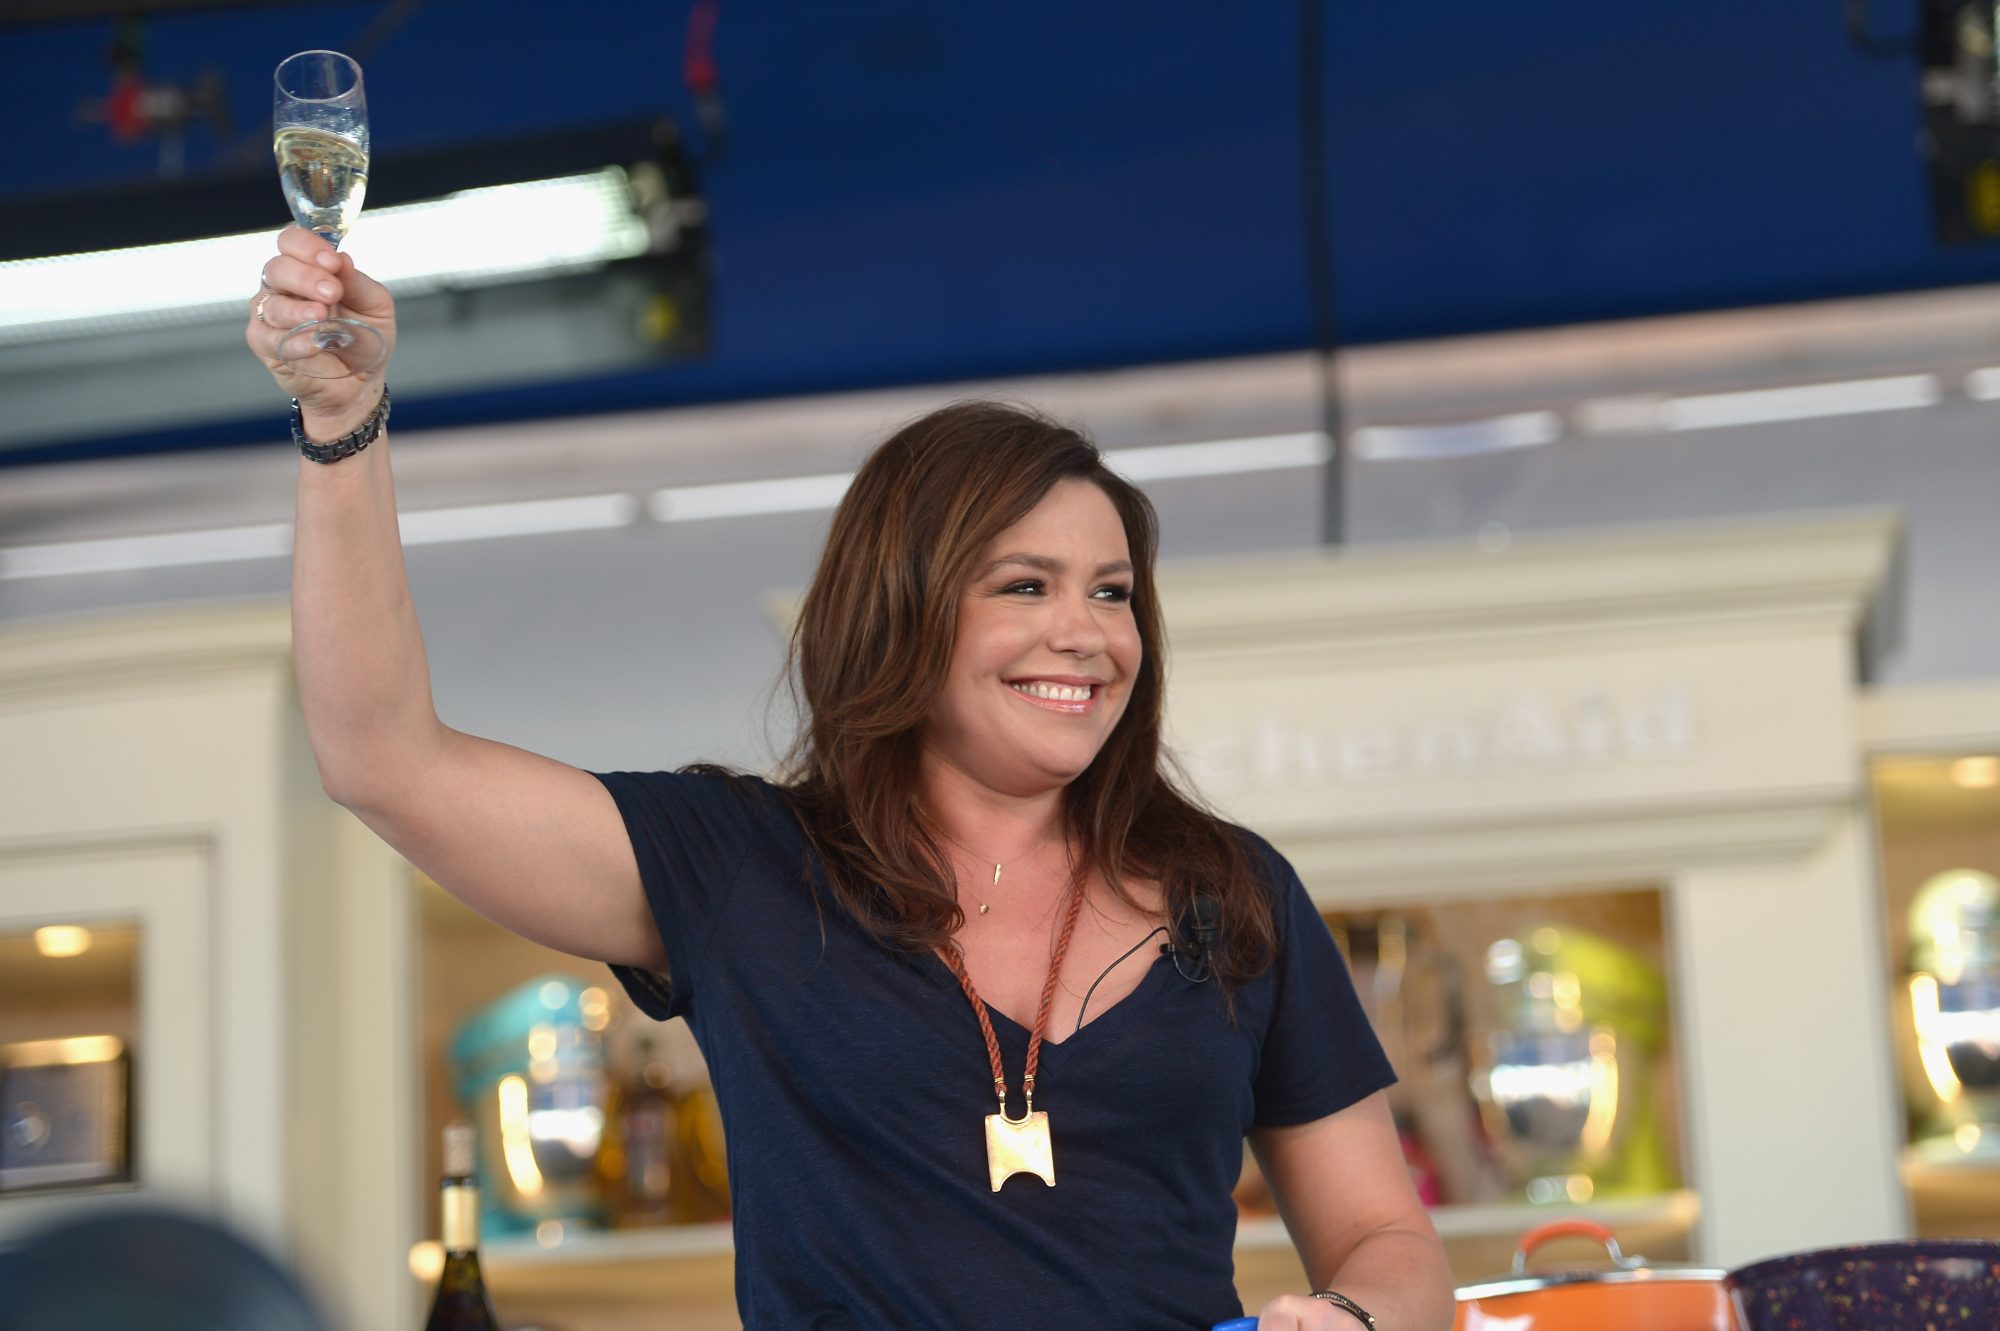 7 Things We Learned at Rachael Ray's 'Women in Food' Panel